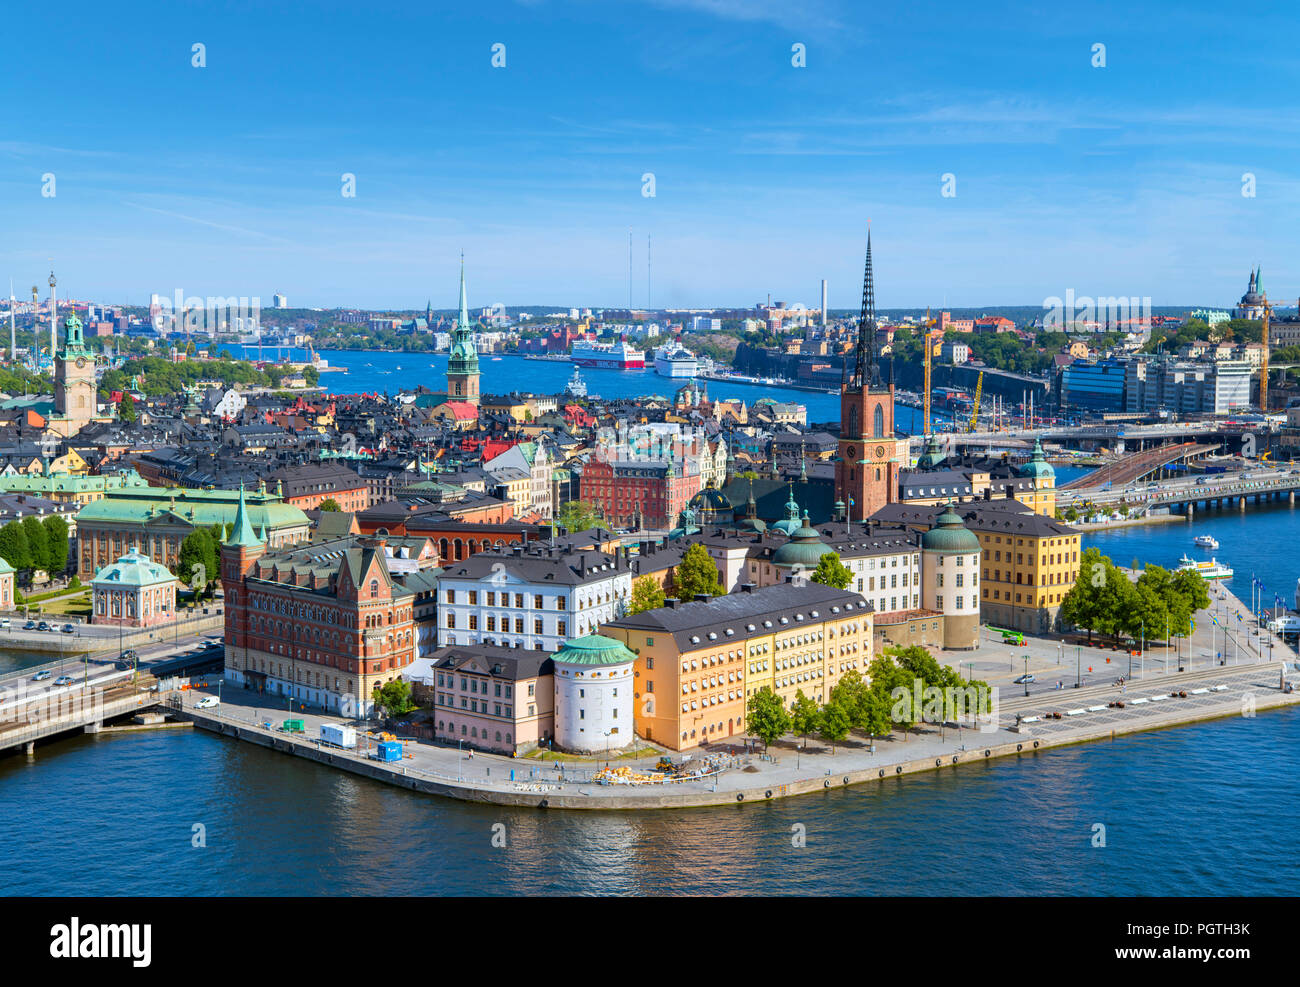 Stockholm. Aerial view of Riddarholmen and Gamla Stan (Old Town) from the Tower of Stockholm City Hall (Stadshuset), Kungsholmen, Stockholm, Sweden - Stock Image